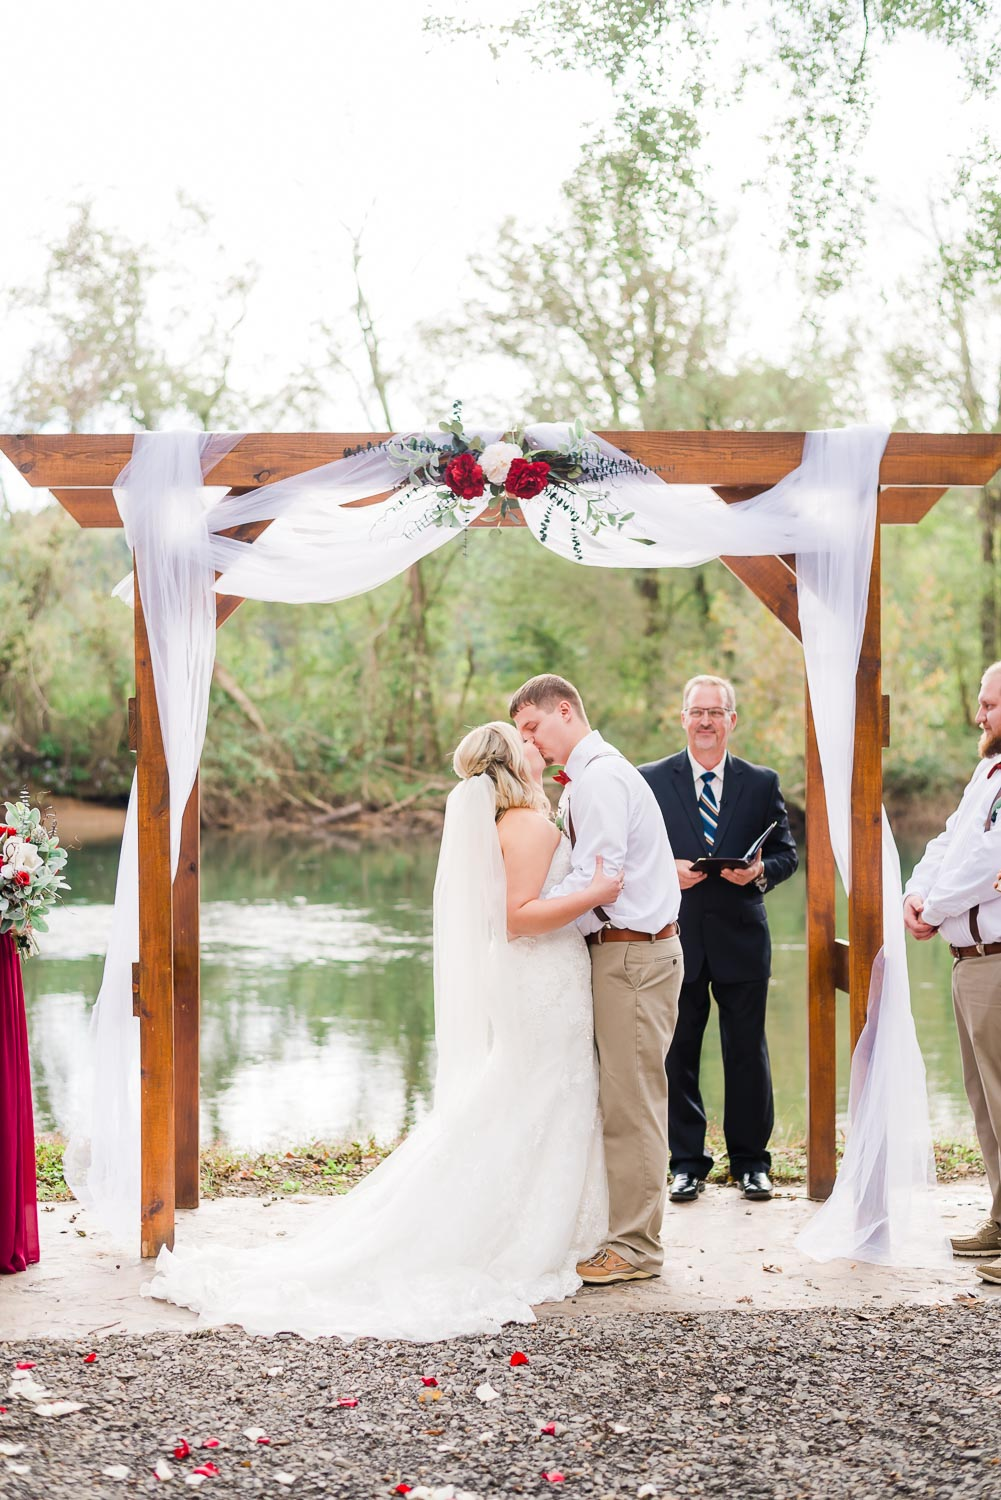 Bride and groom's first kiss as a married couple at their outdoor riverside wedding in TN